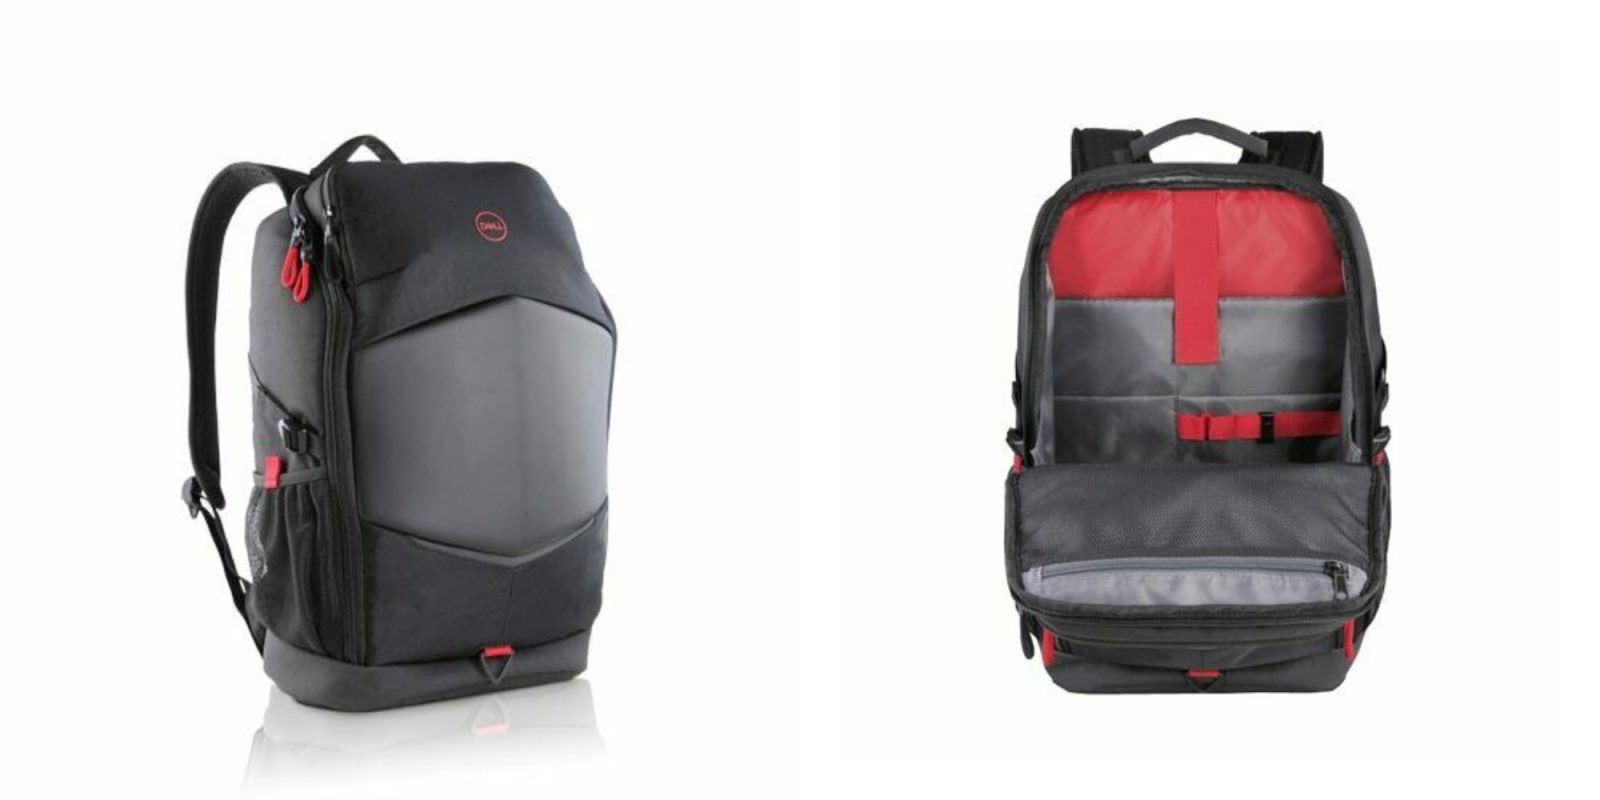 Dell's backpack holds any MacBook and many 17-inch gaming laptops: $30 (Save 45%)